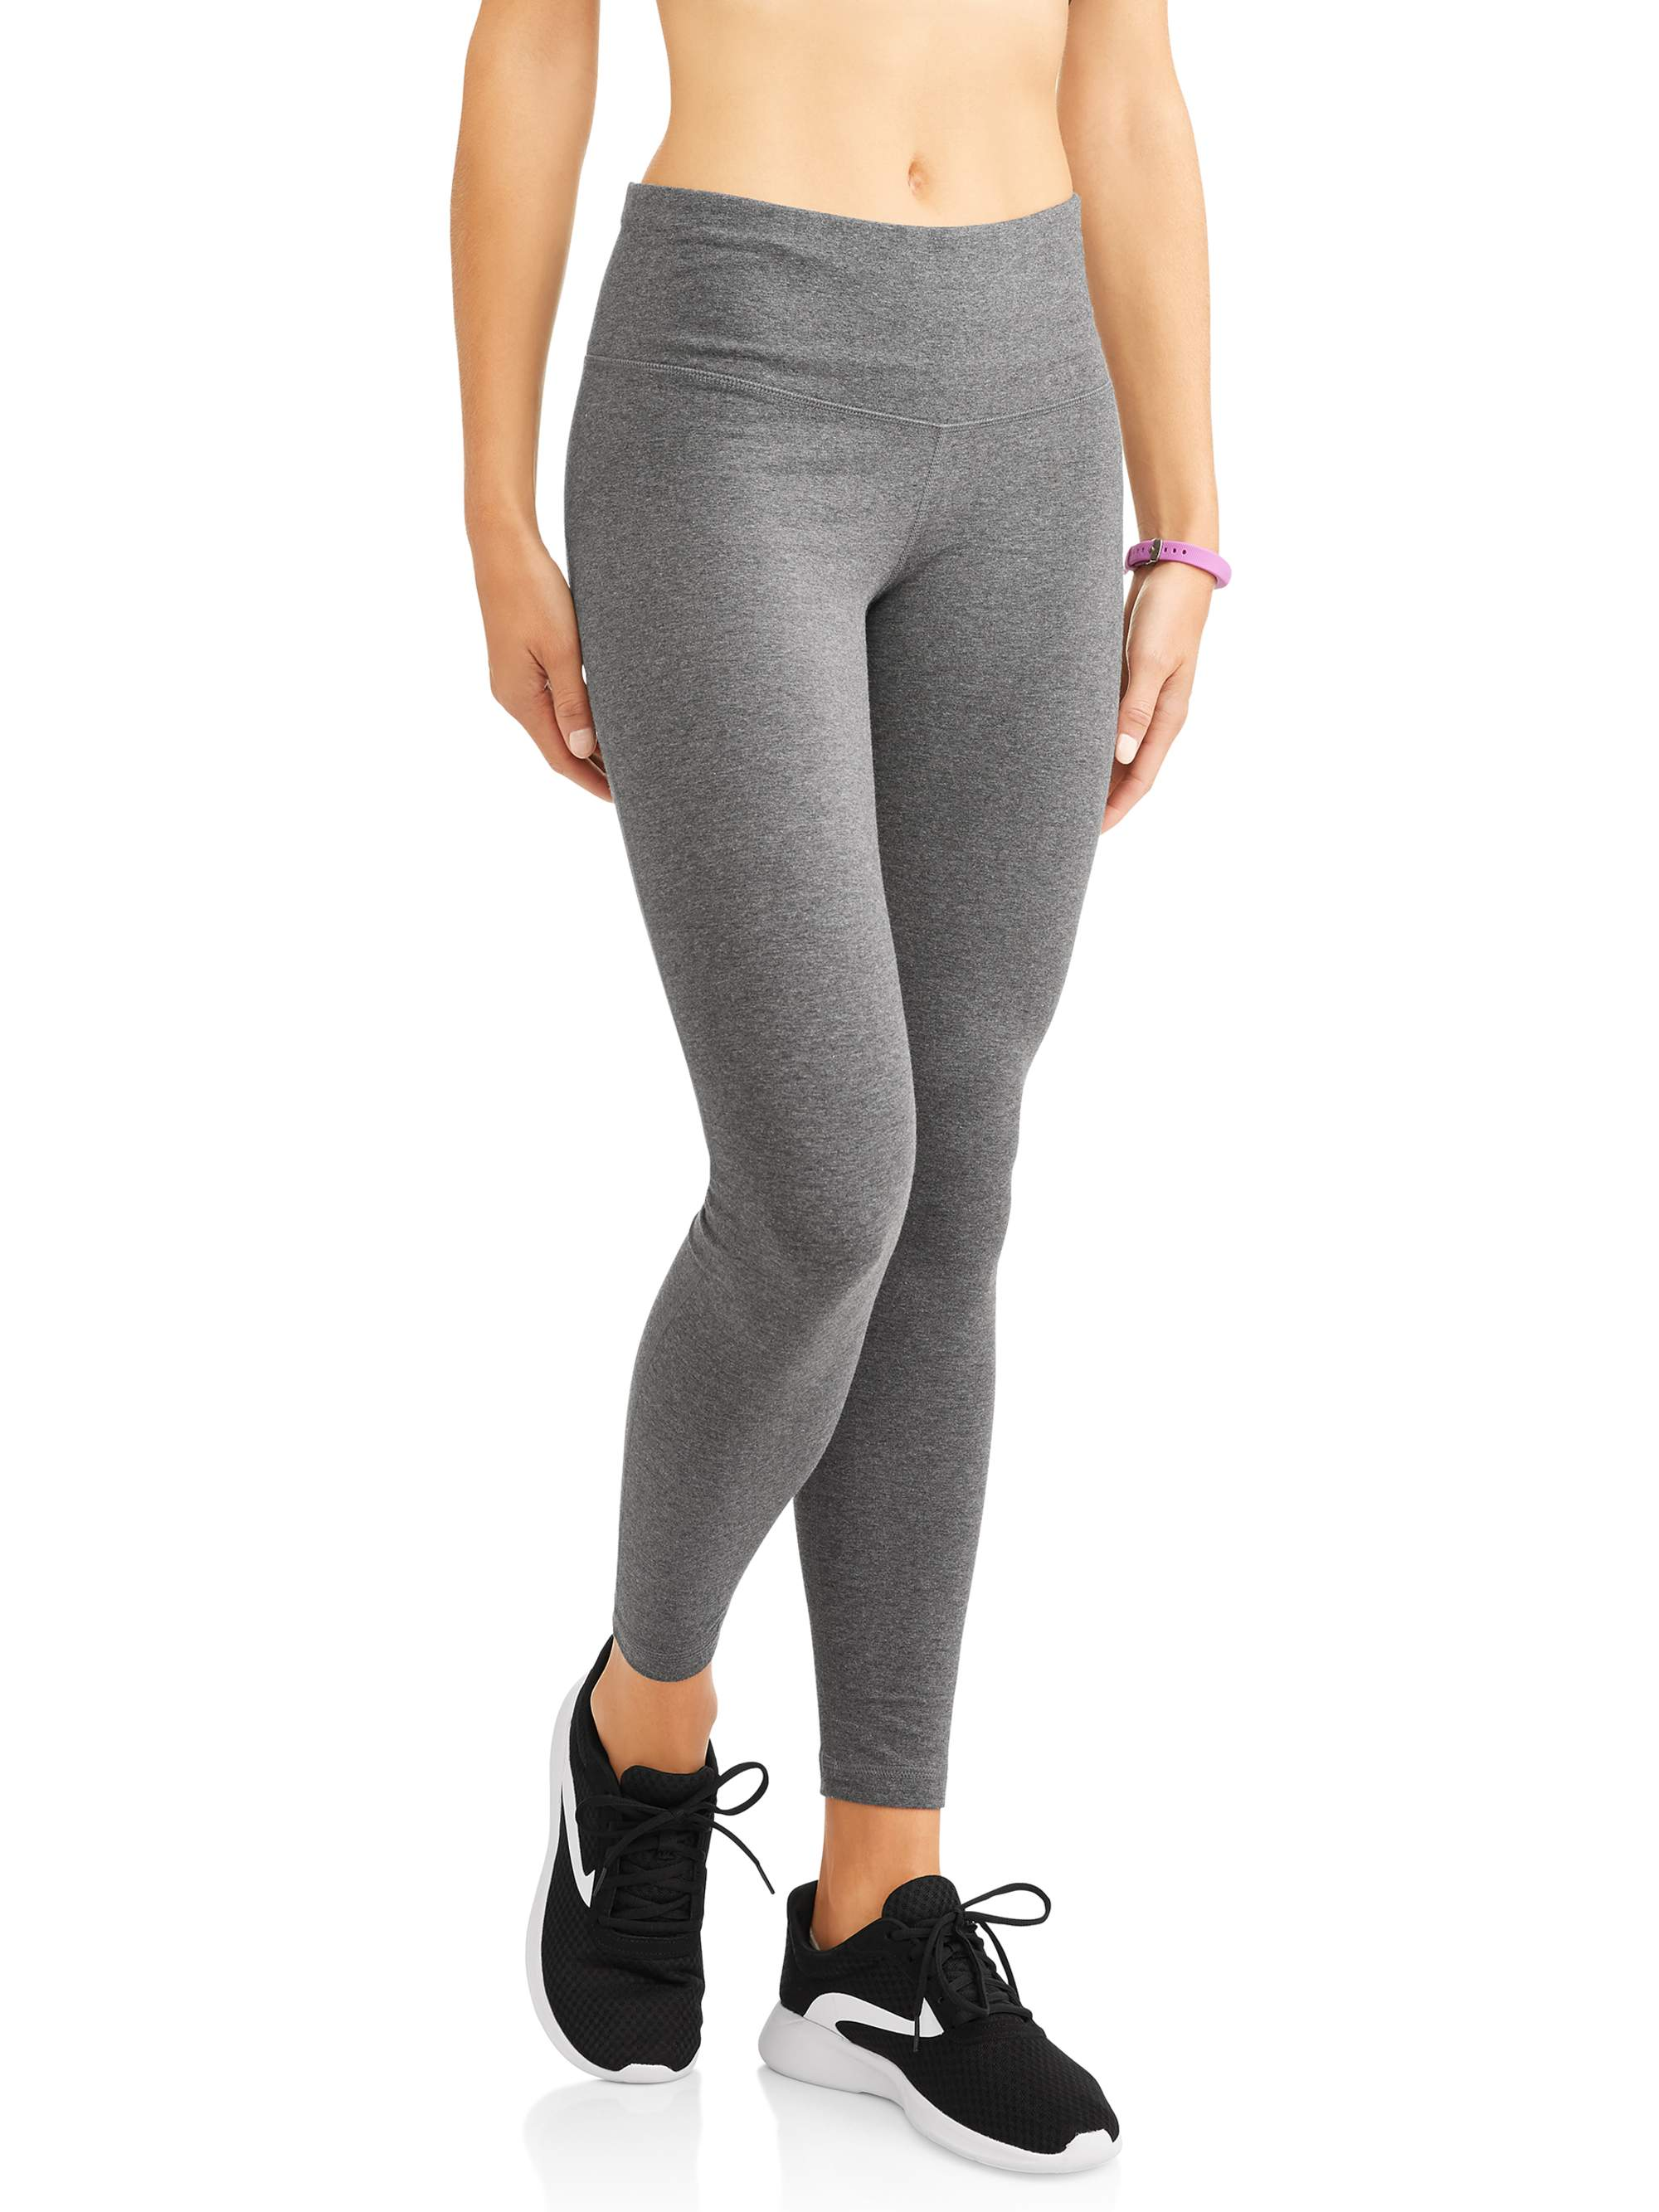 c7cfe10ca6a1f Athletic Works - Women's Active Core Cotton Legging - Walmart.com